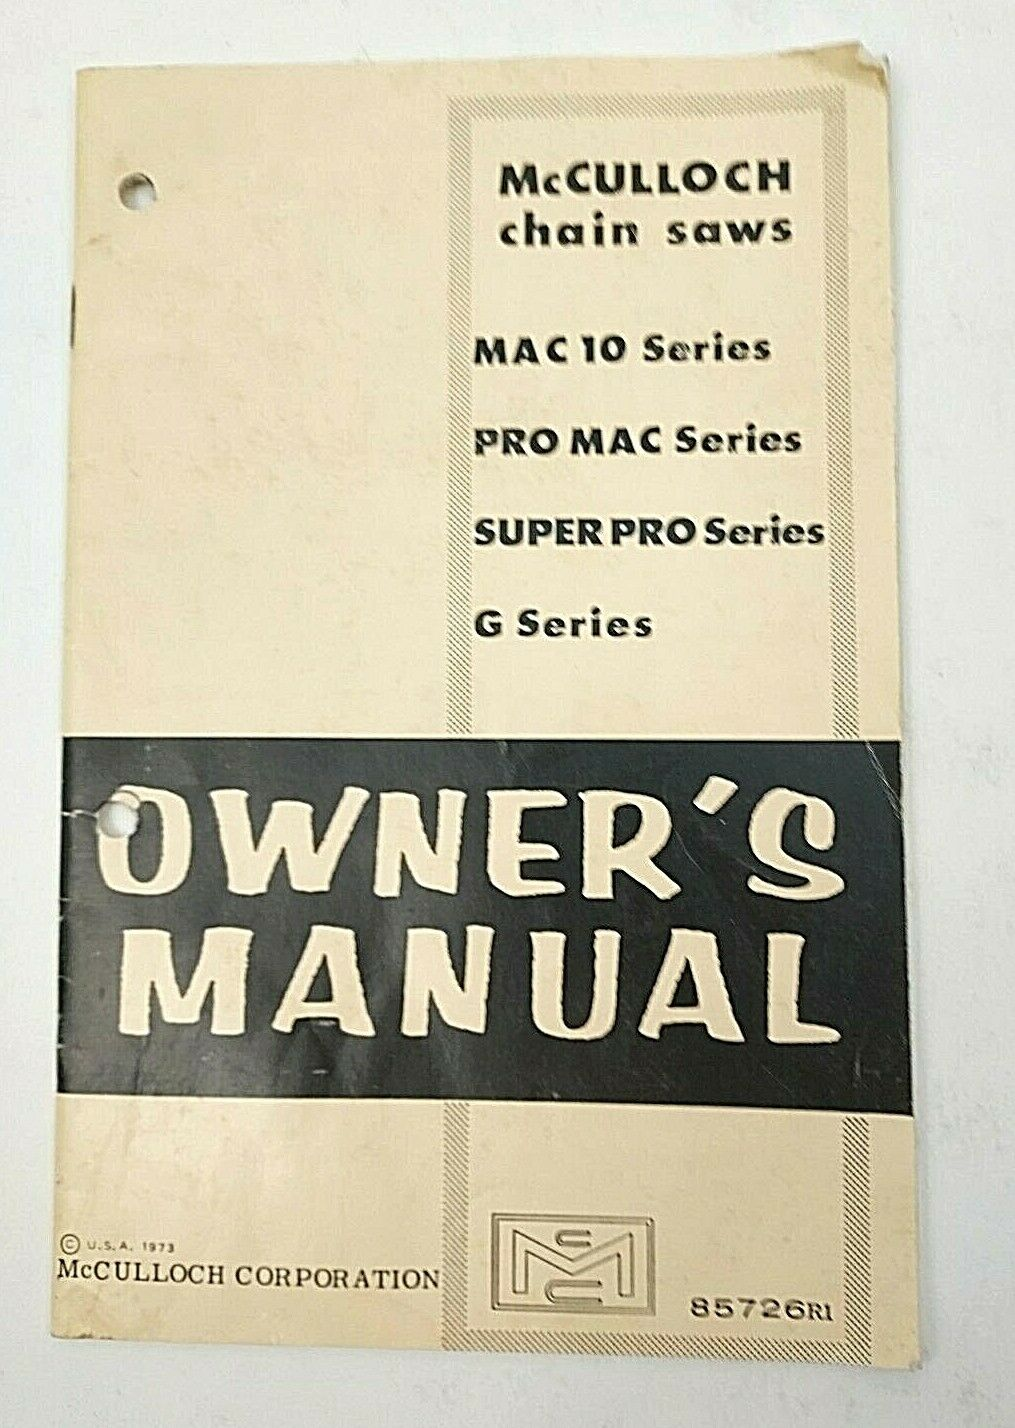 1973 McCulloch Chain Saw Owners Manual 85726R1